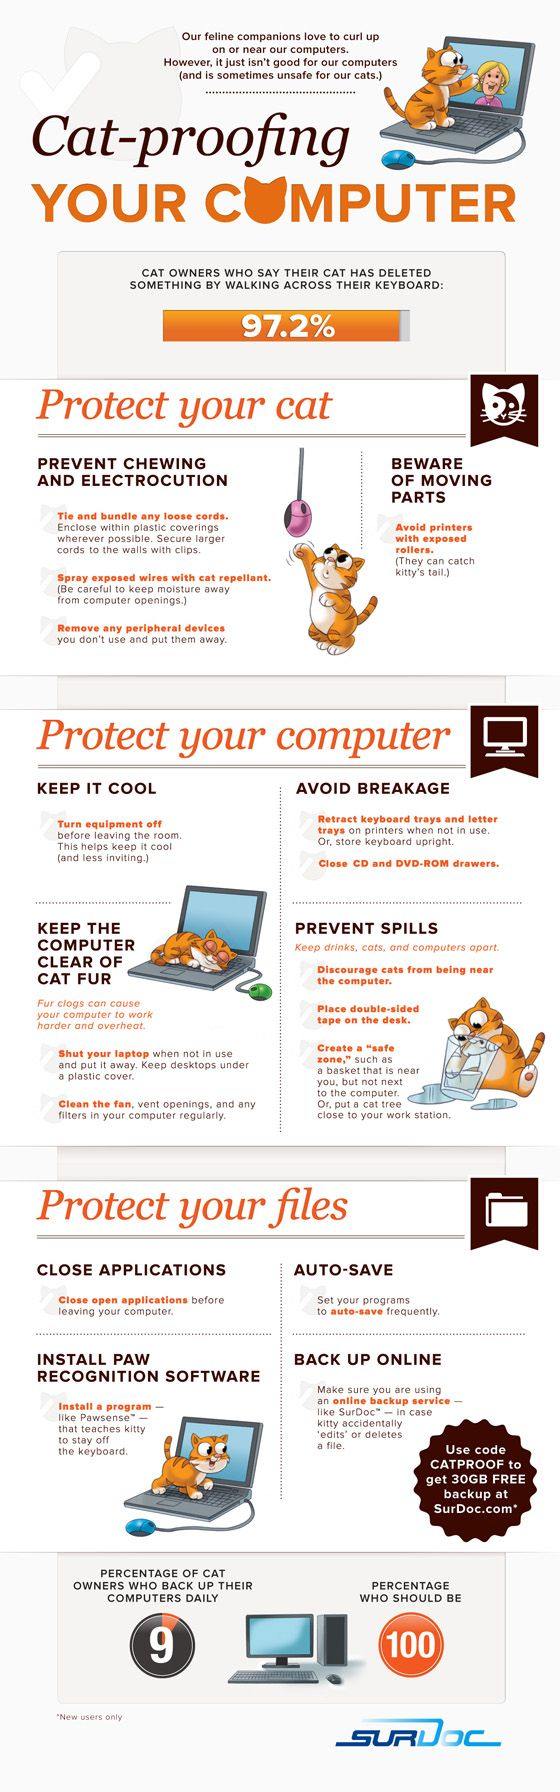 Cat-proof your computer! This is a serious problem for many people LOL (but seriously..)